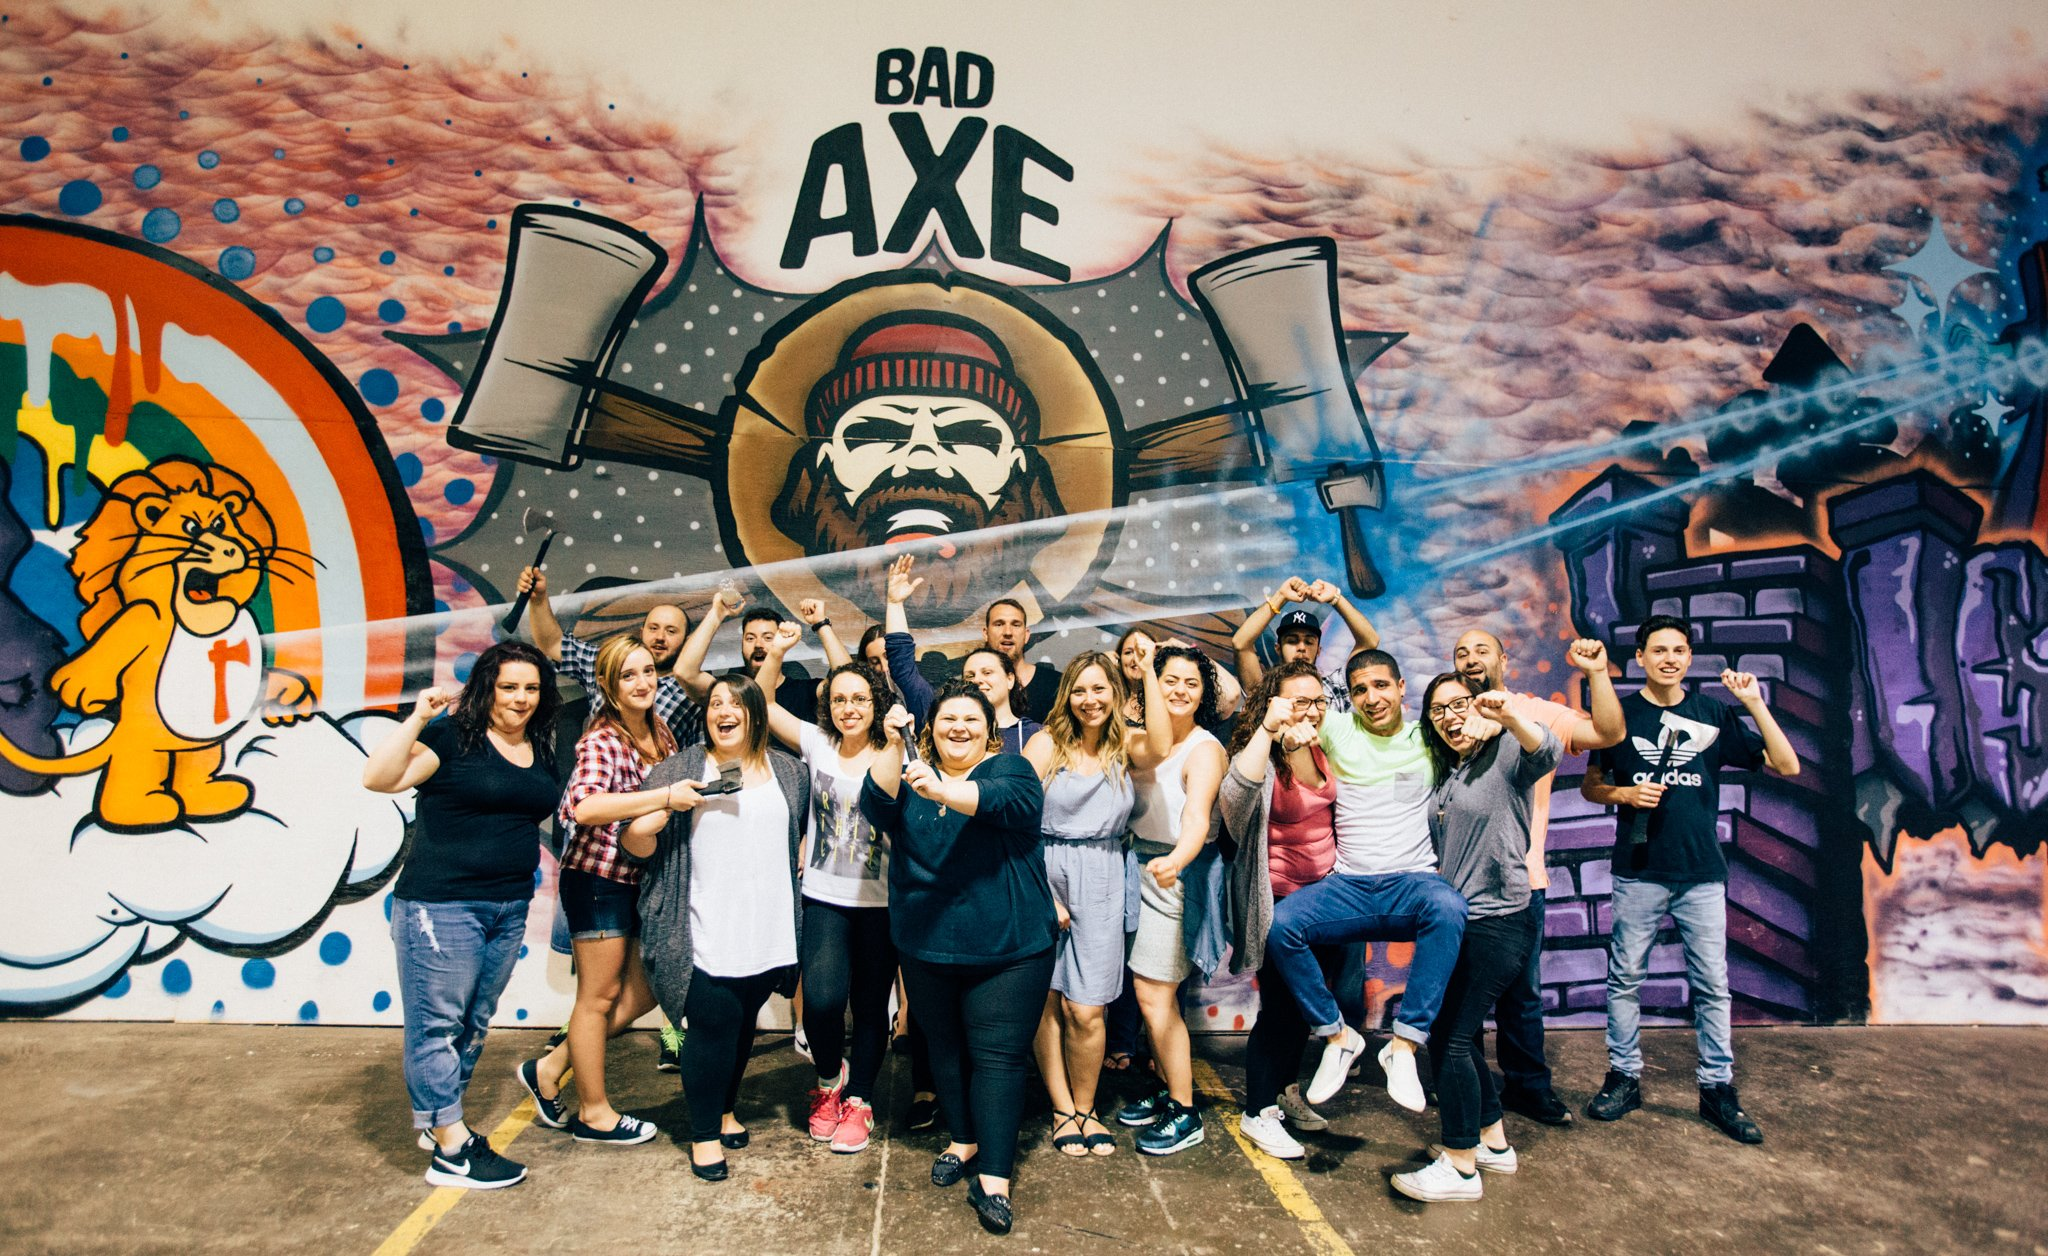 Adult Axe Throwing Birthday Party